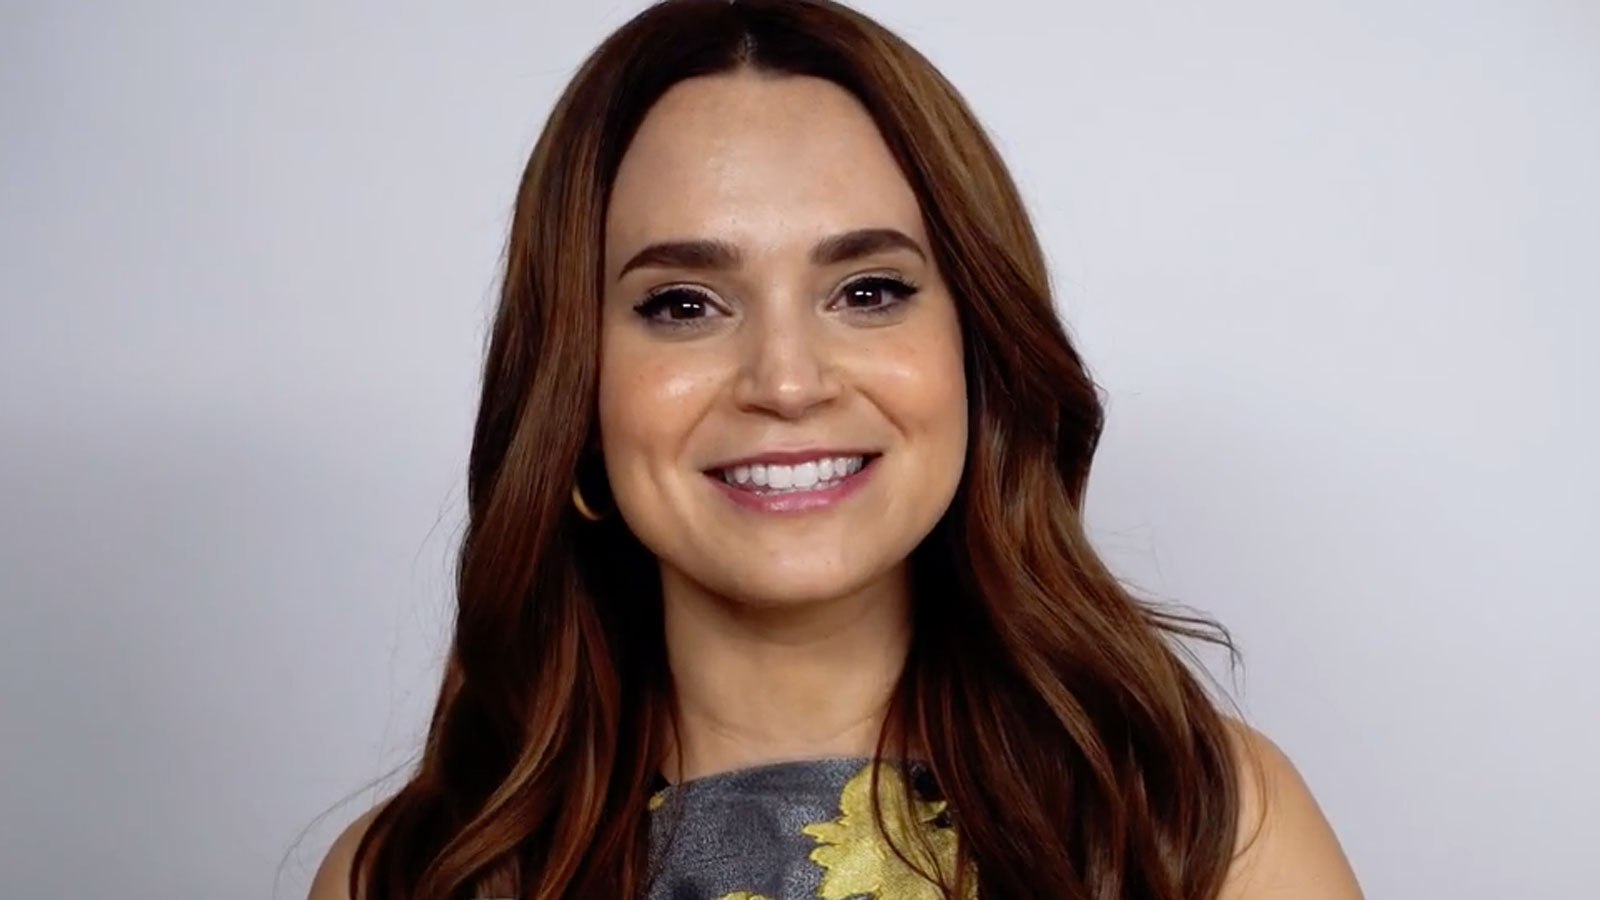 rosanna-pansino-FT-BLOG0517.jpg